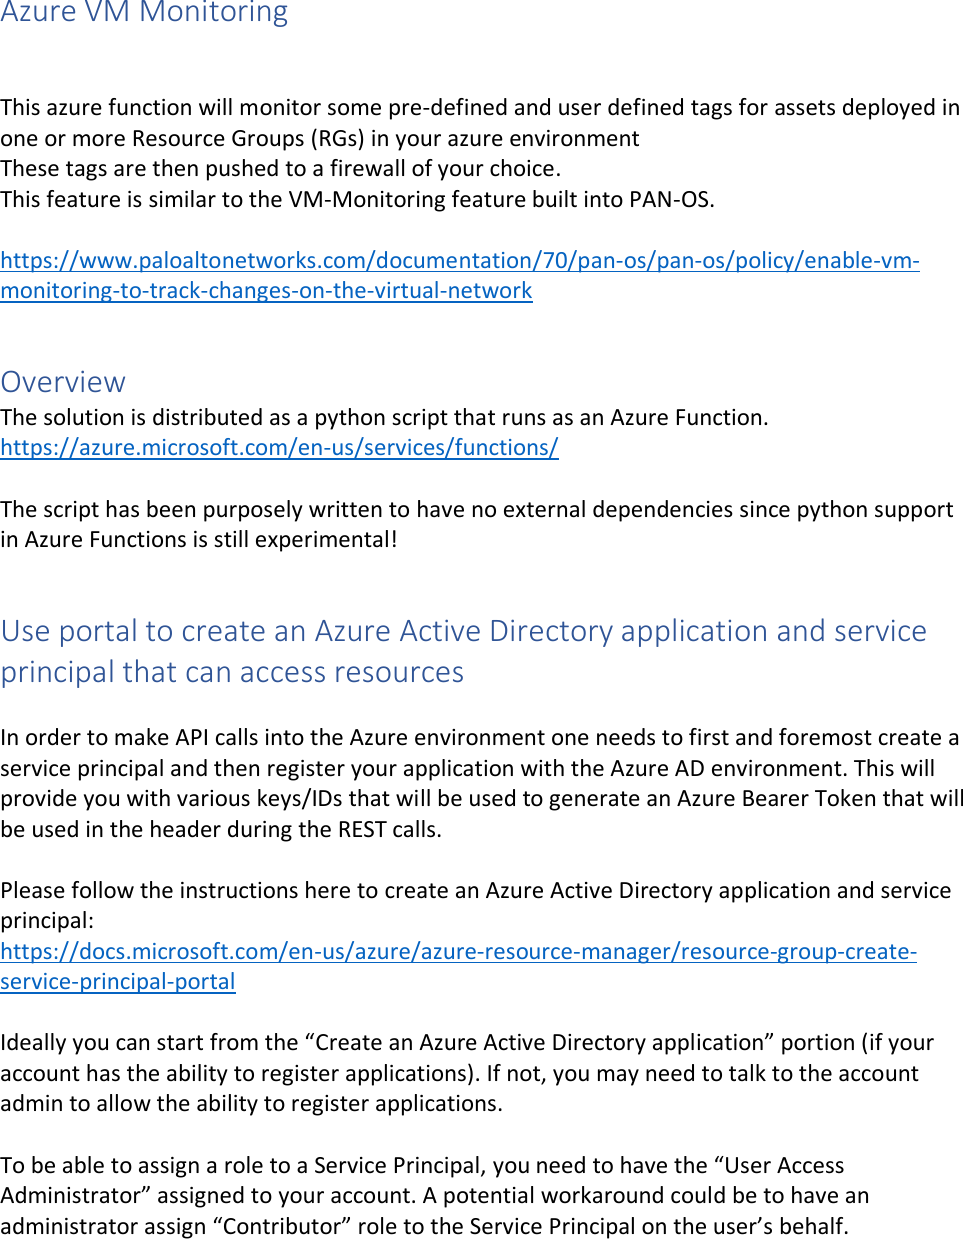 Azure VM Monitoring Setup Instructions